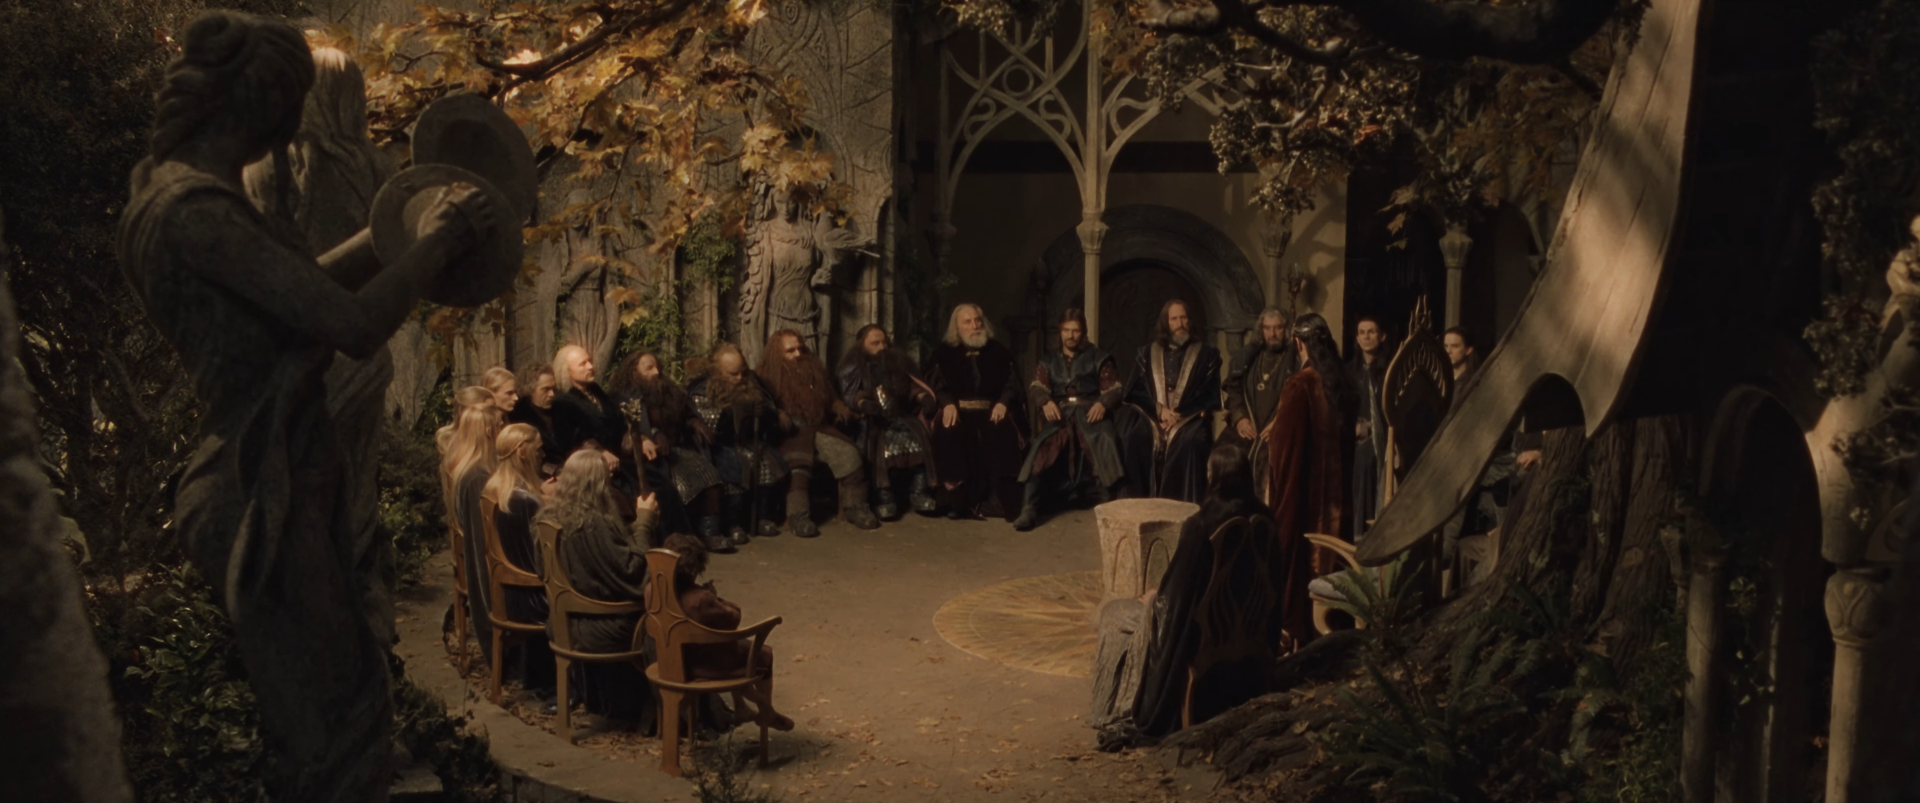 The Fellowship Of The Ring Movie Elves